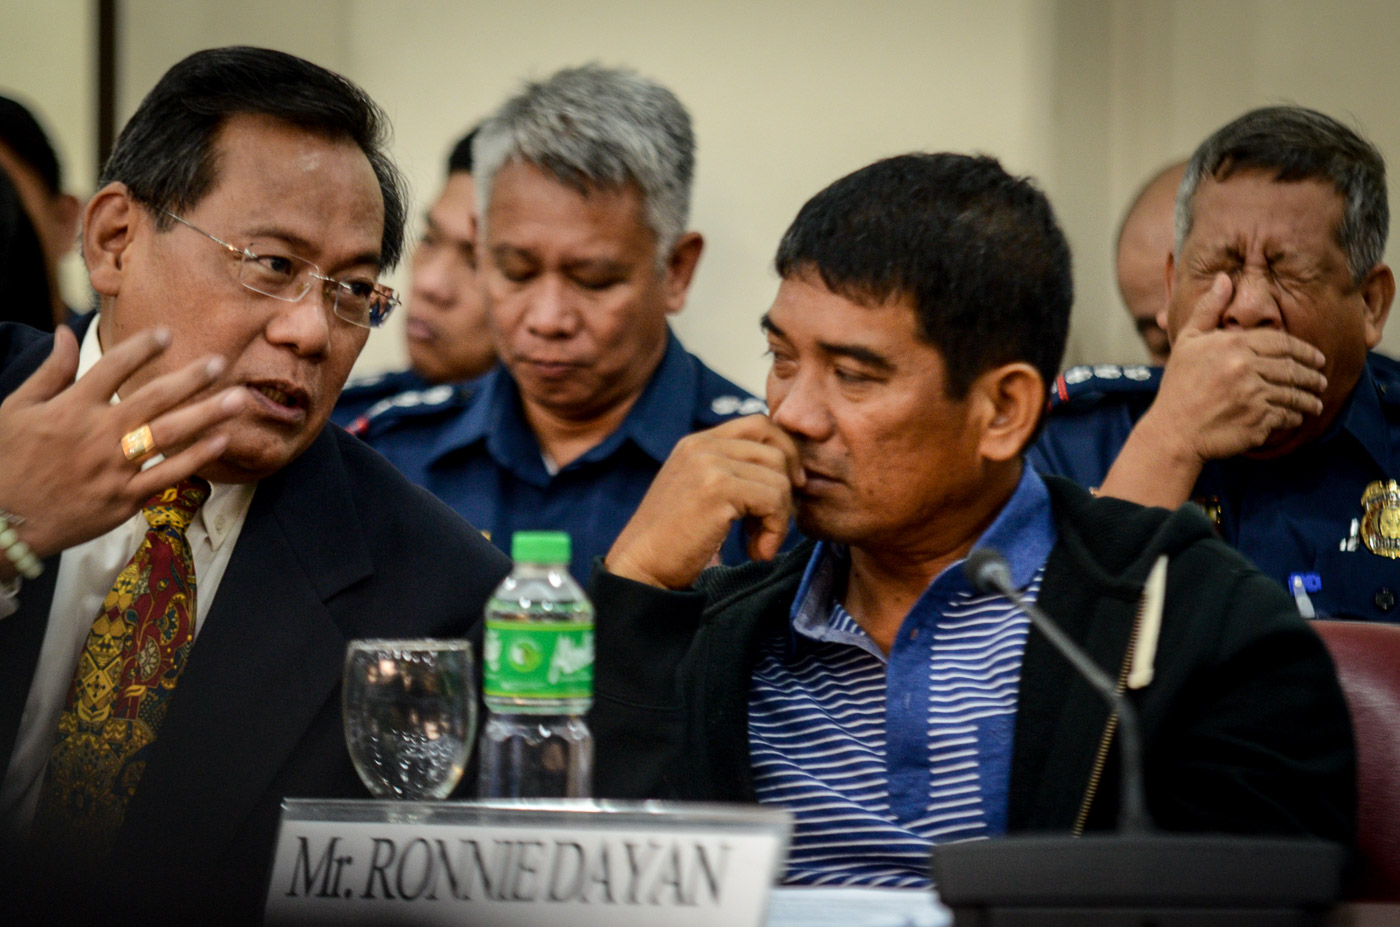 WHO'S LYING? Ronnie Dayan at the House of Representatives on November 24, 2016. Photo by LeAnne Jazul/Rappler